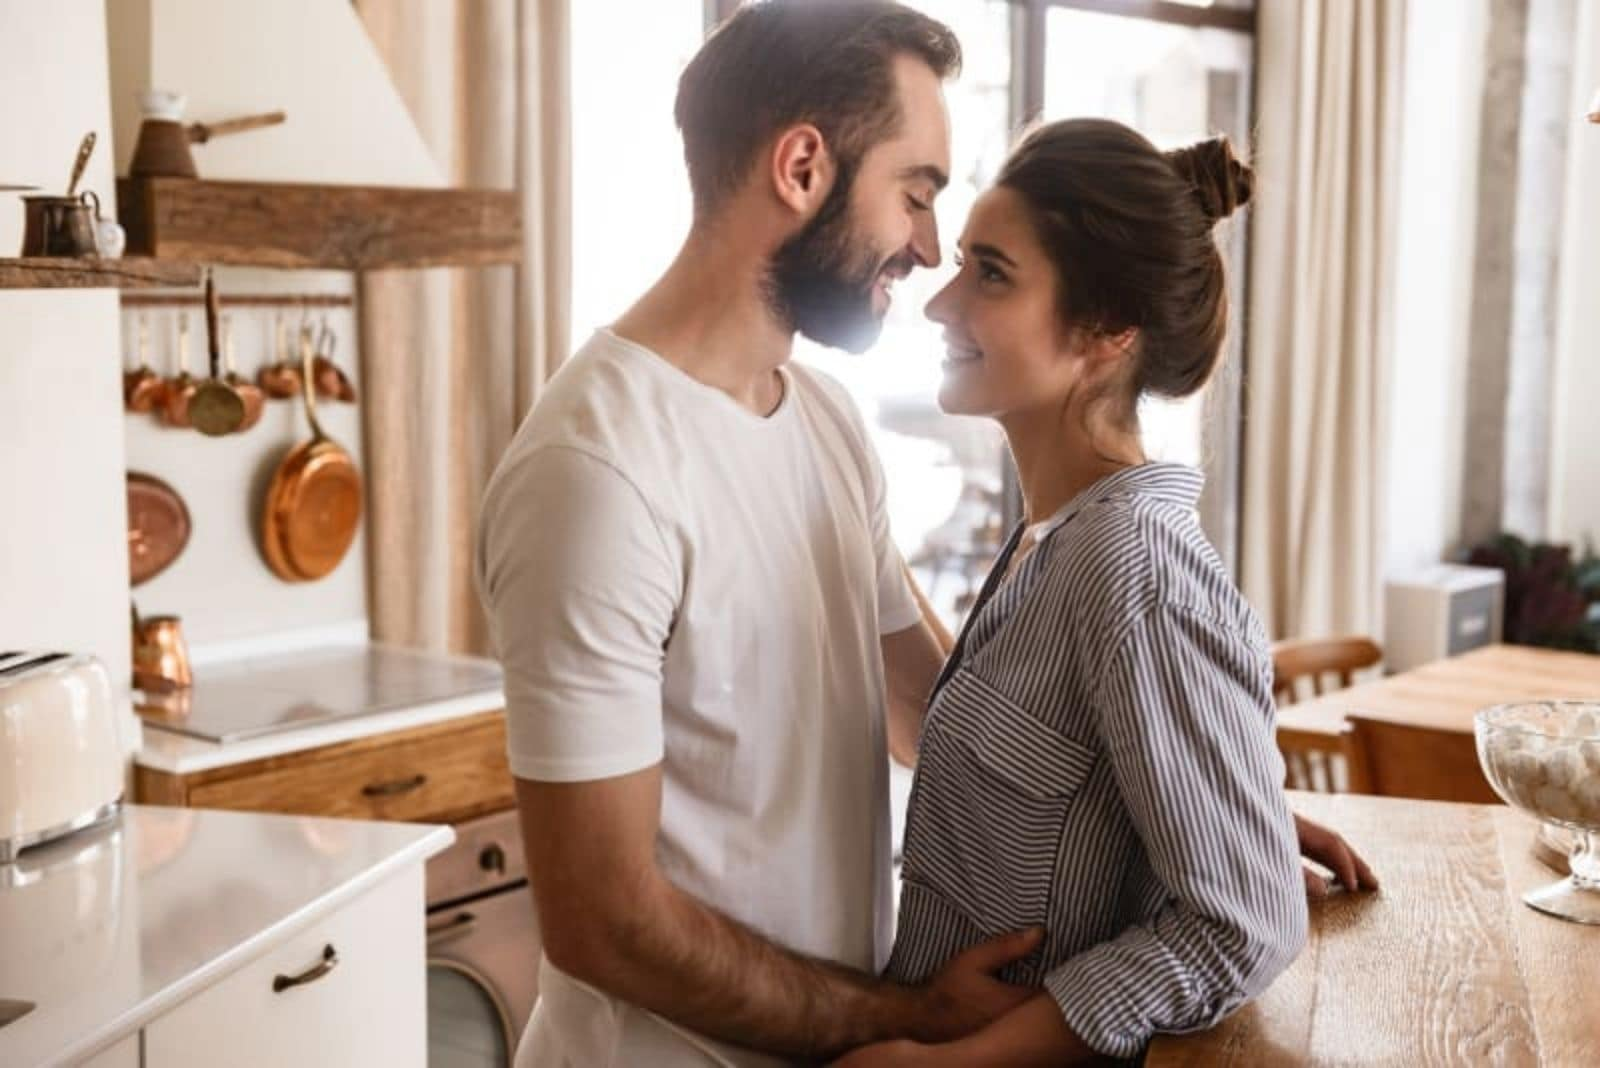 romantic moments in kitchen